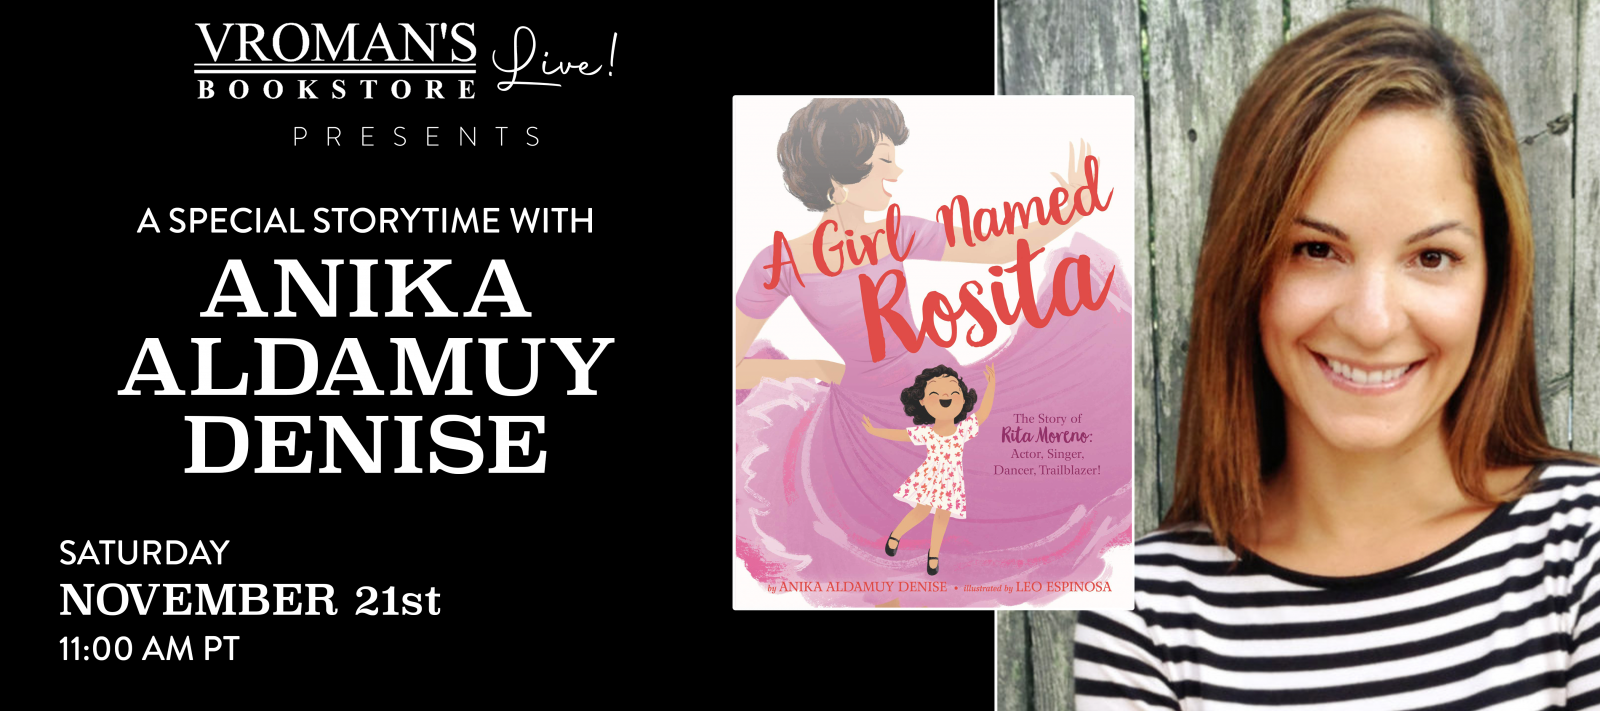 Vroman's Story Time With Anika Aldamuy Denise